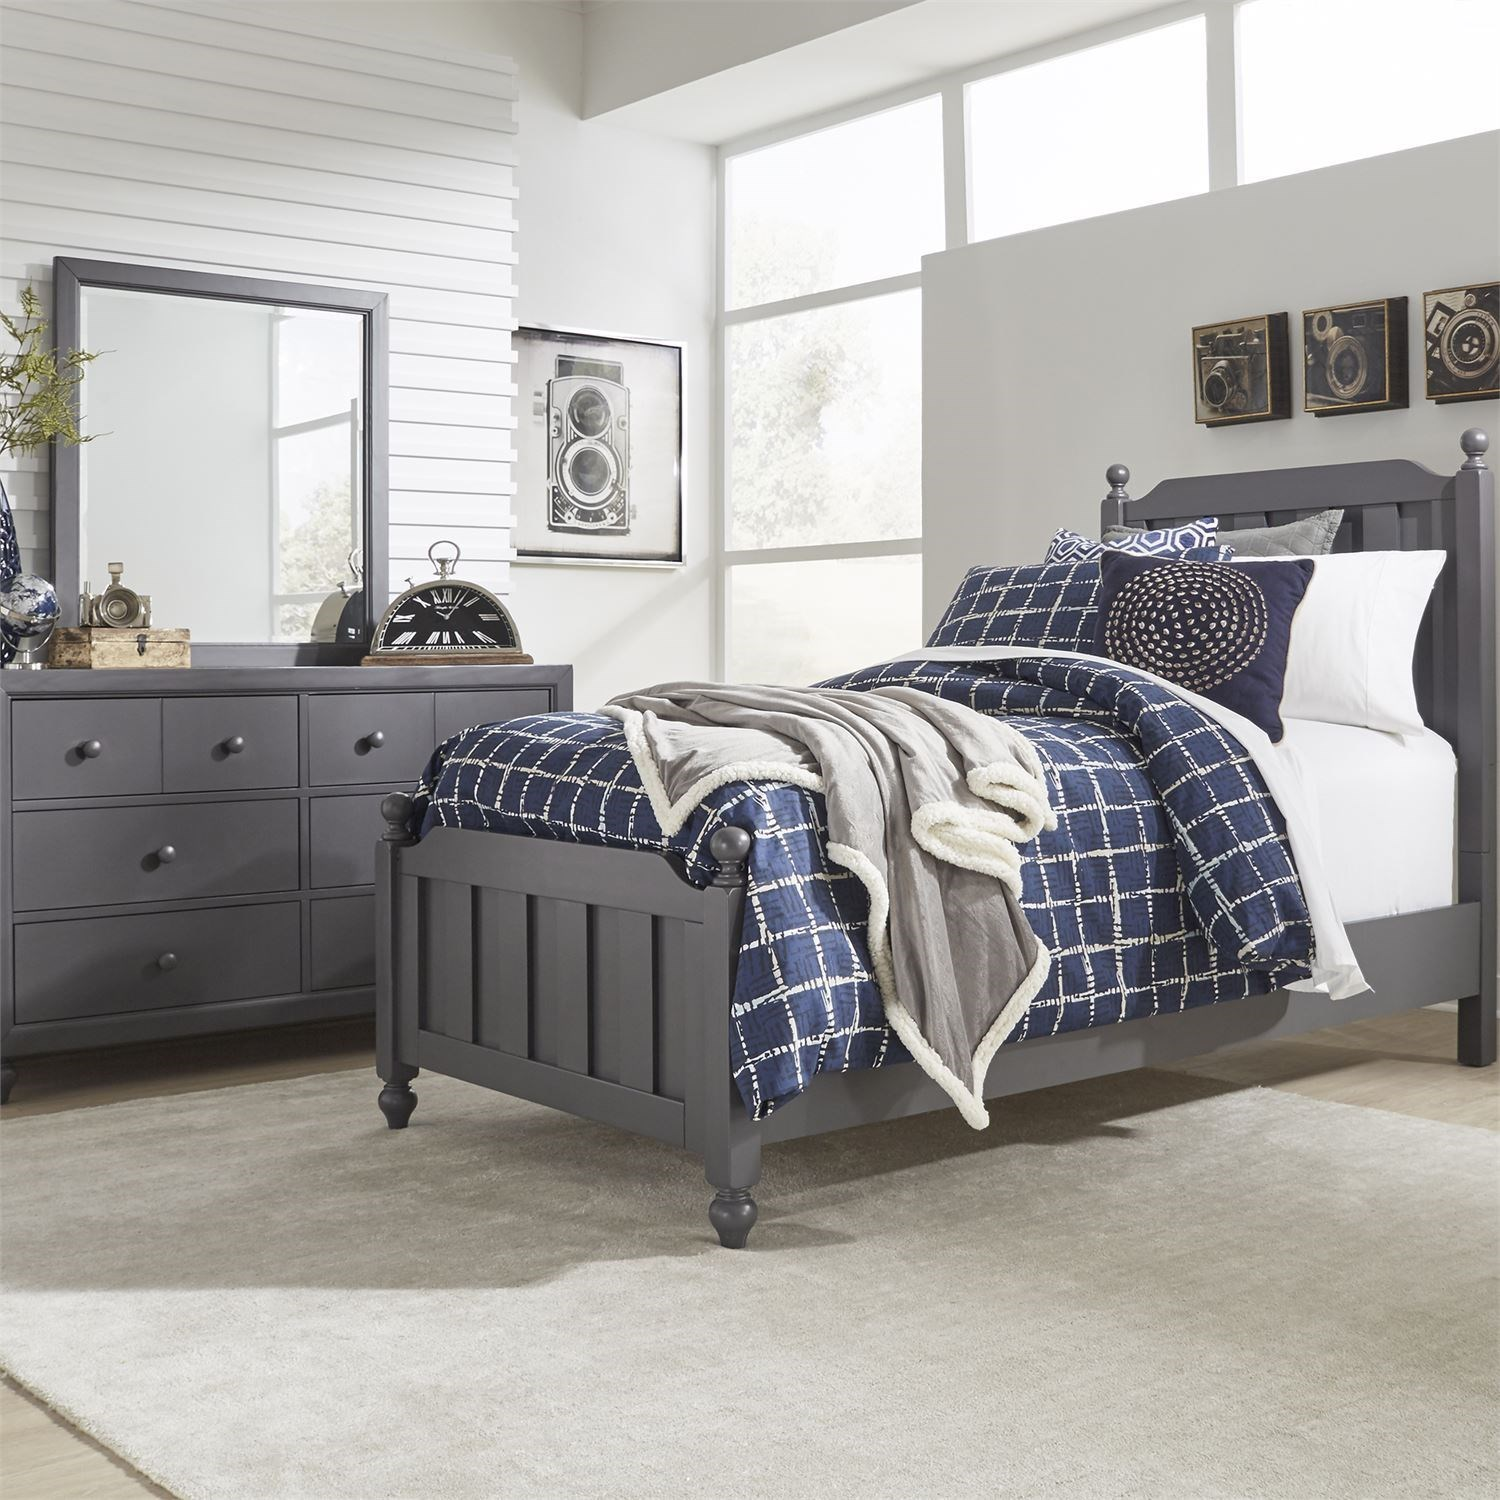 Cottage View Twin Bedroom Group by Liberty Furniture at Goffena Furniture & Mattress Center